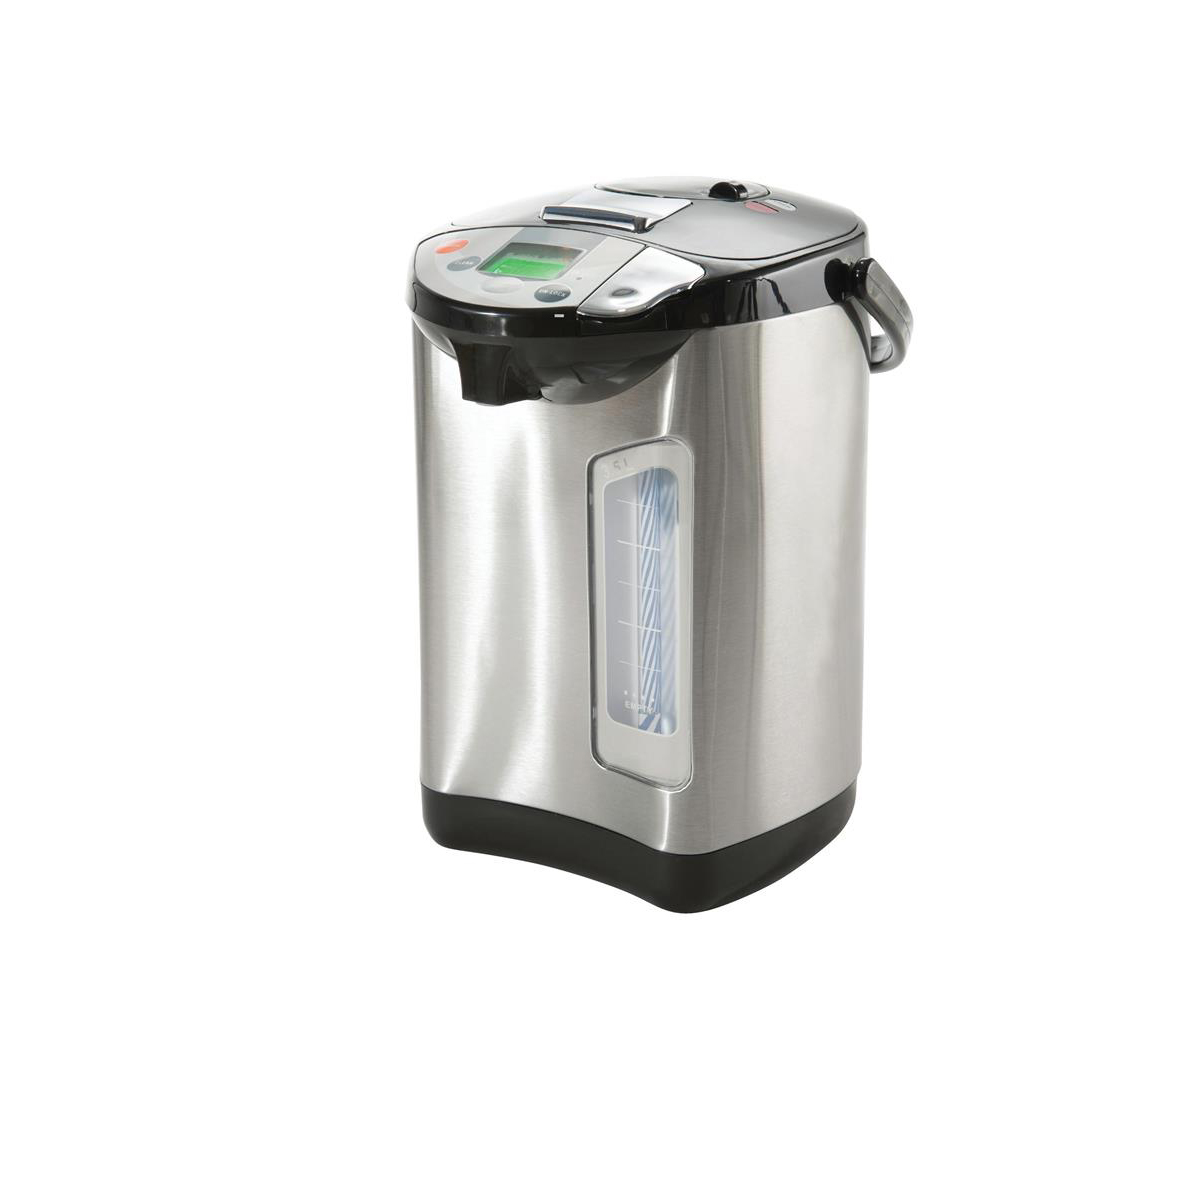 Addis Thermo Pot 3.5 Litre Stainless Steel / Black Ref 516521